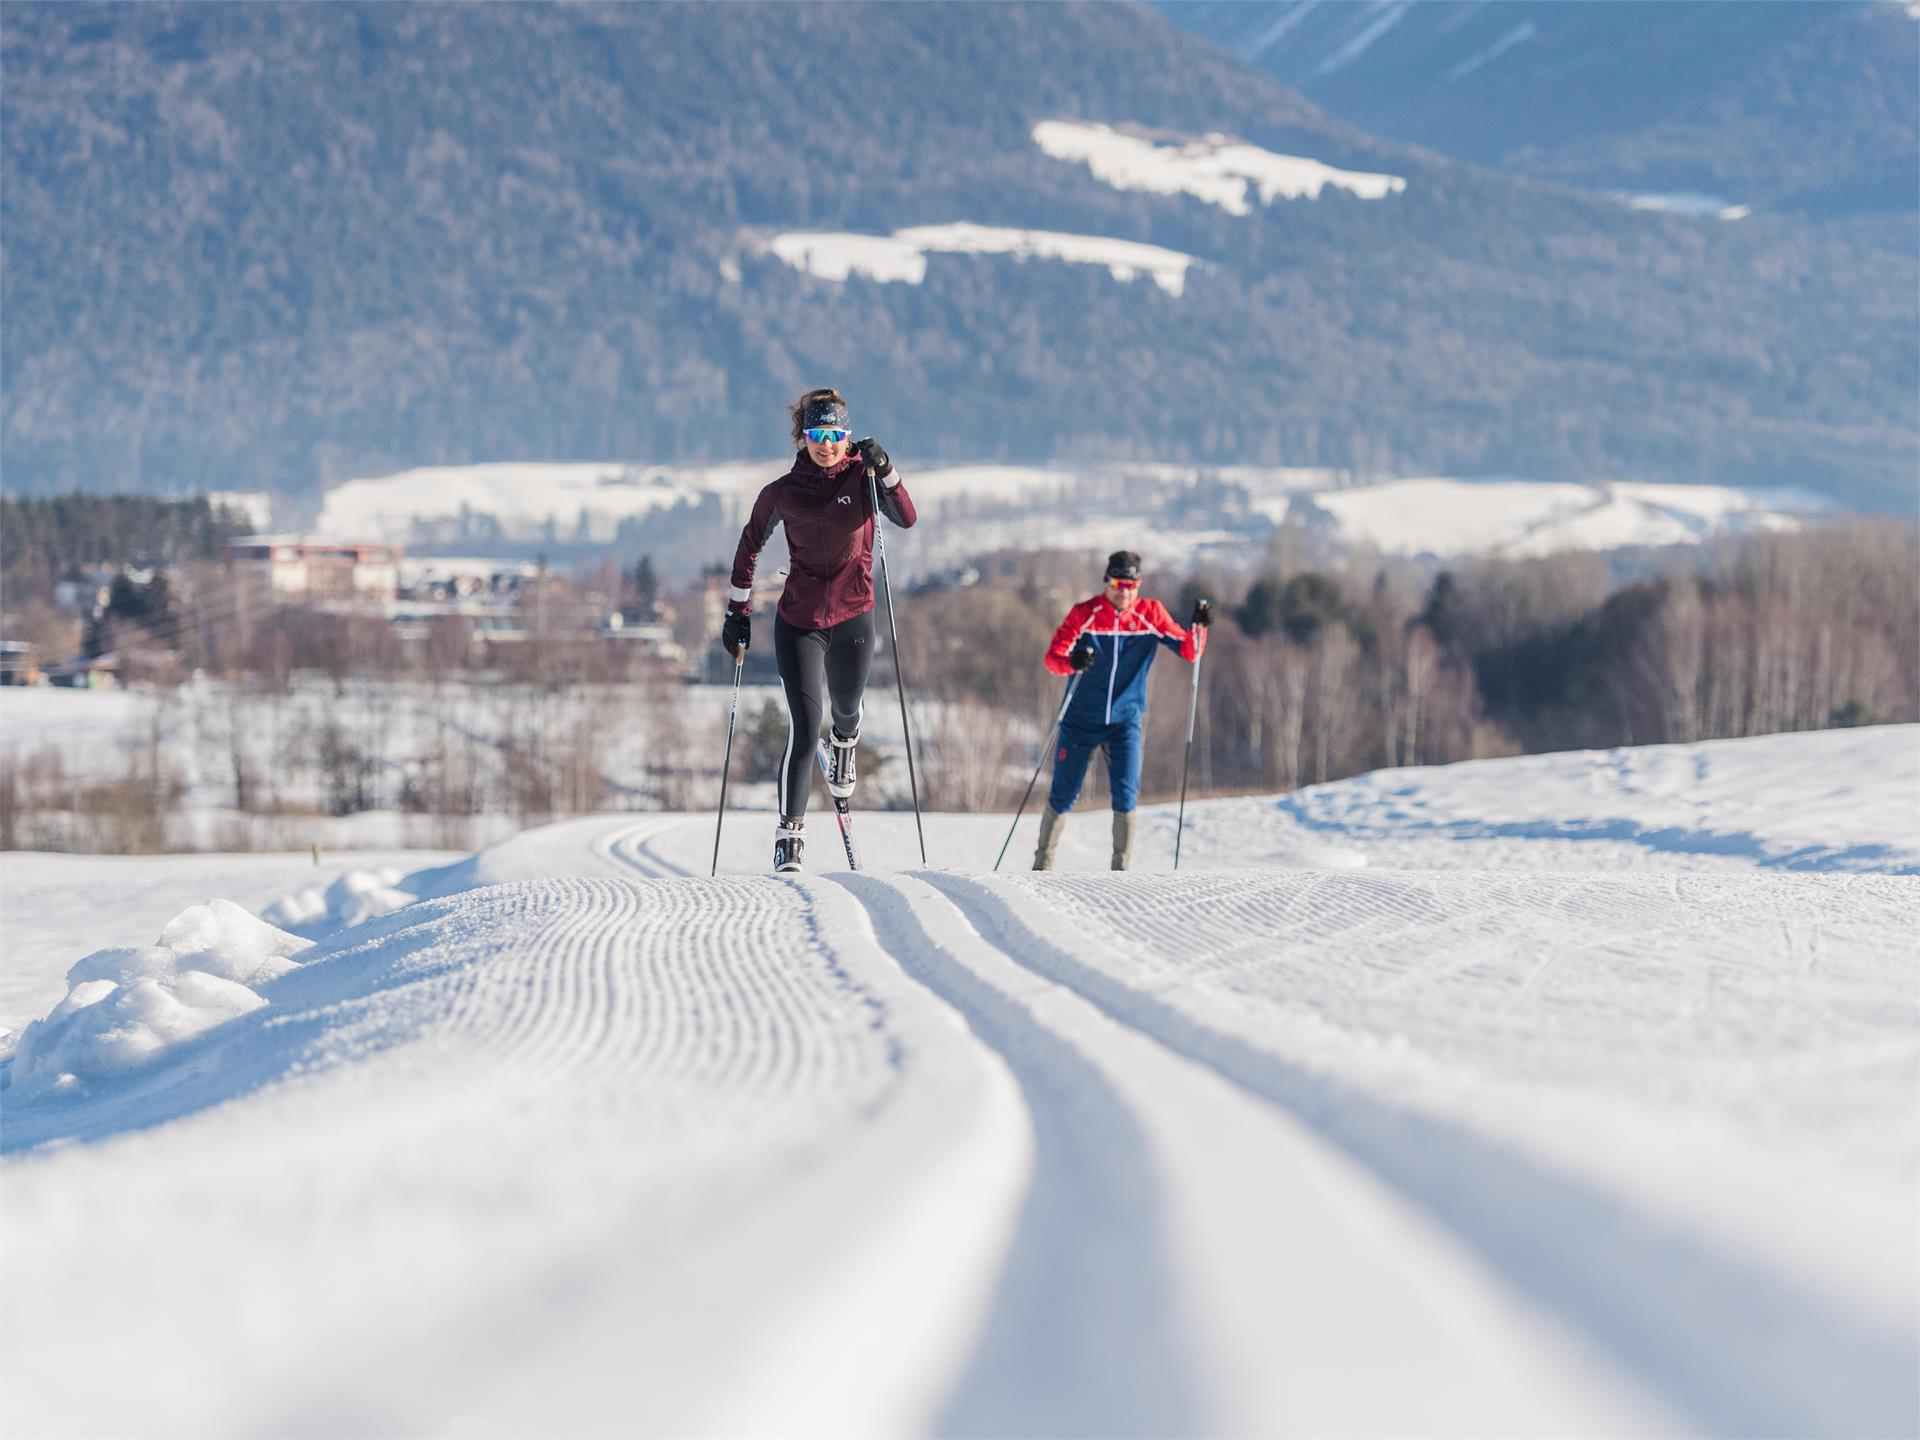 Cross-country skiing taster lesson